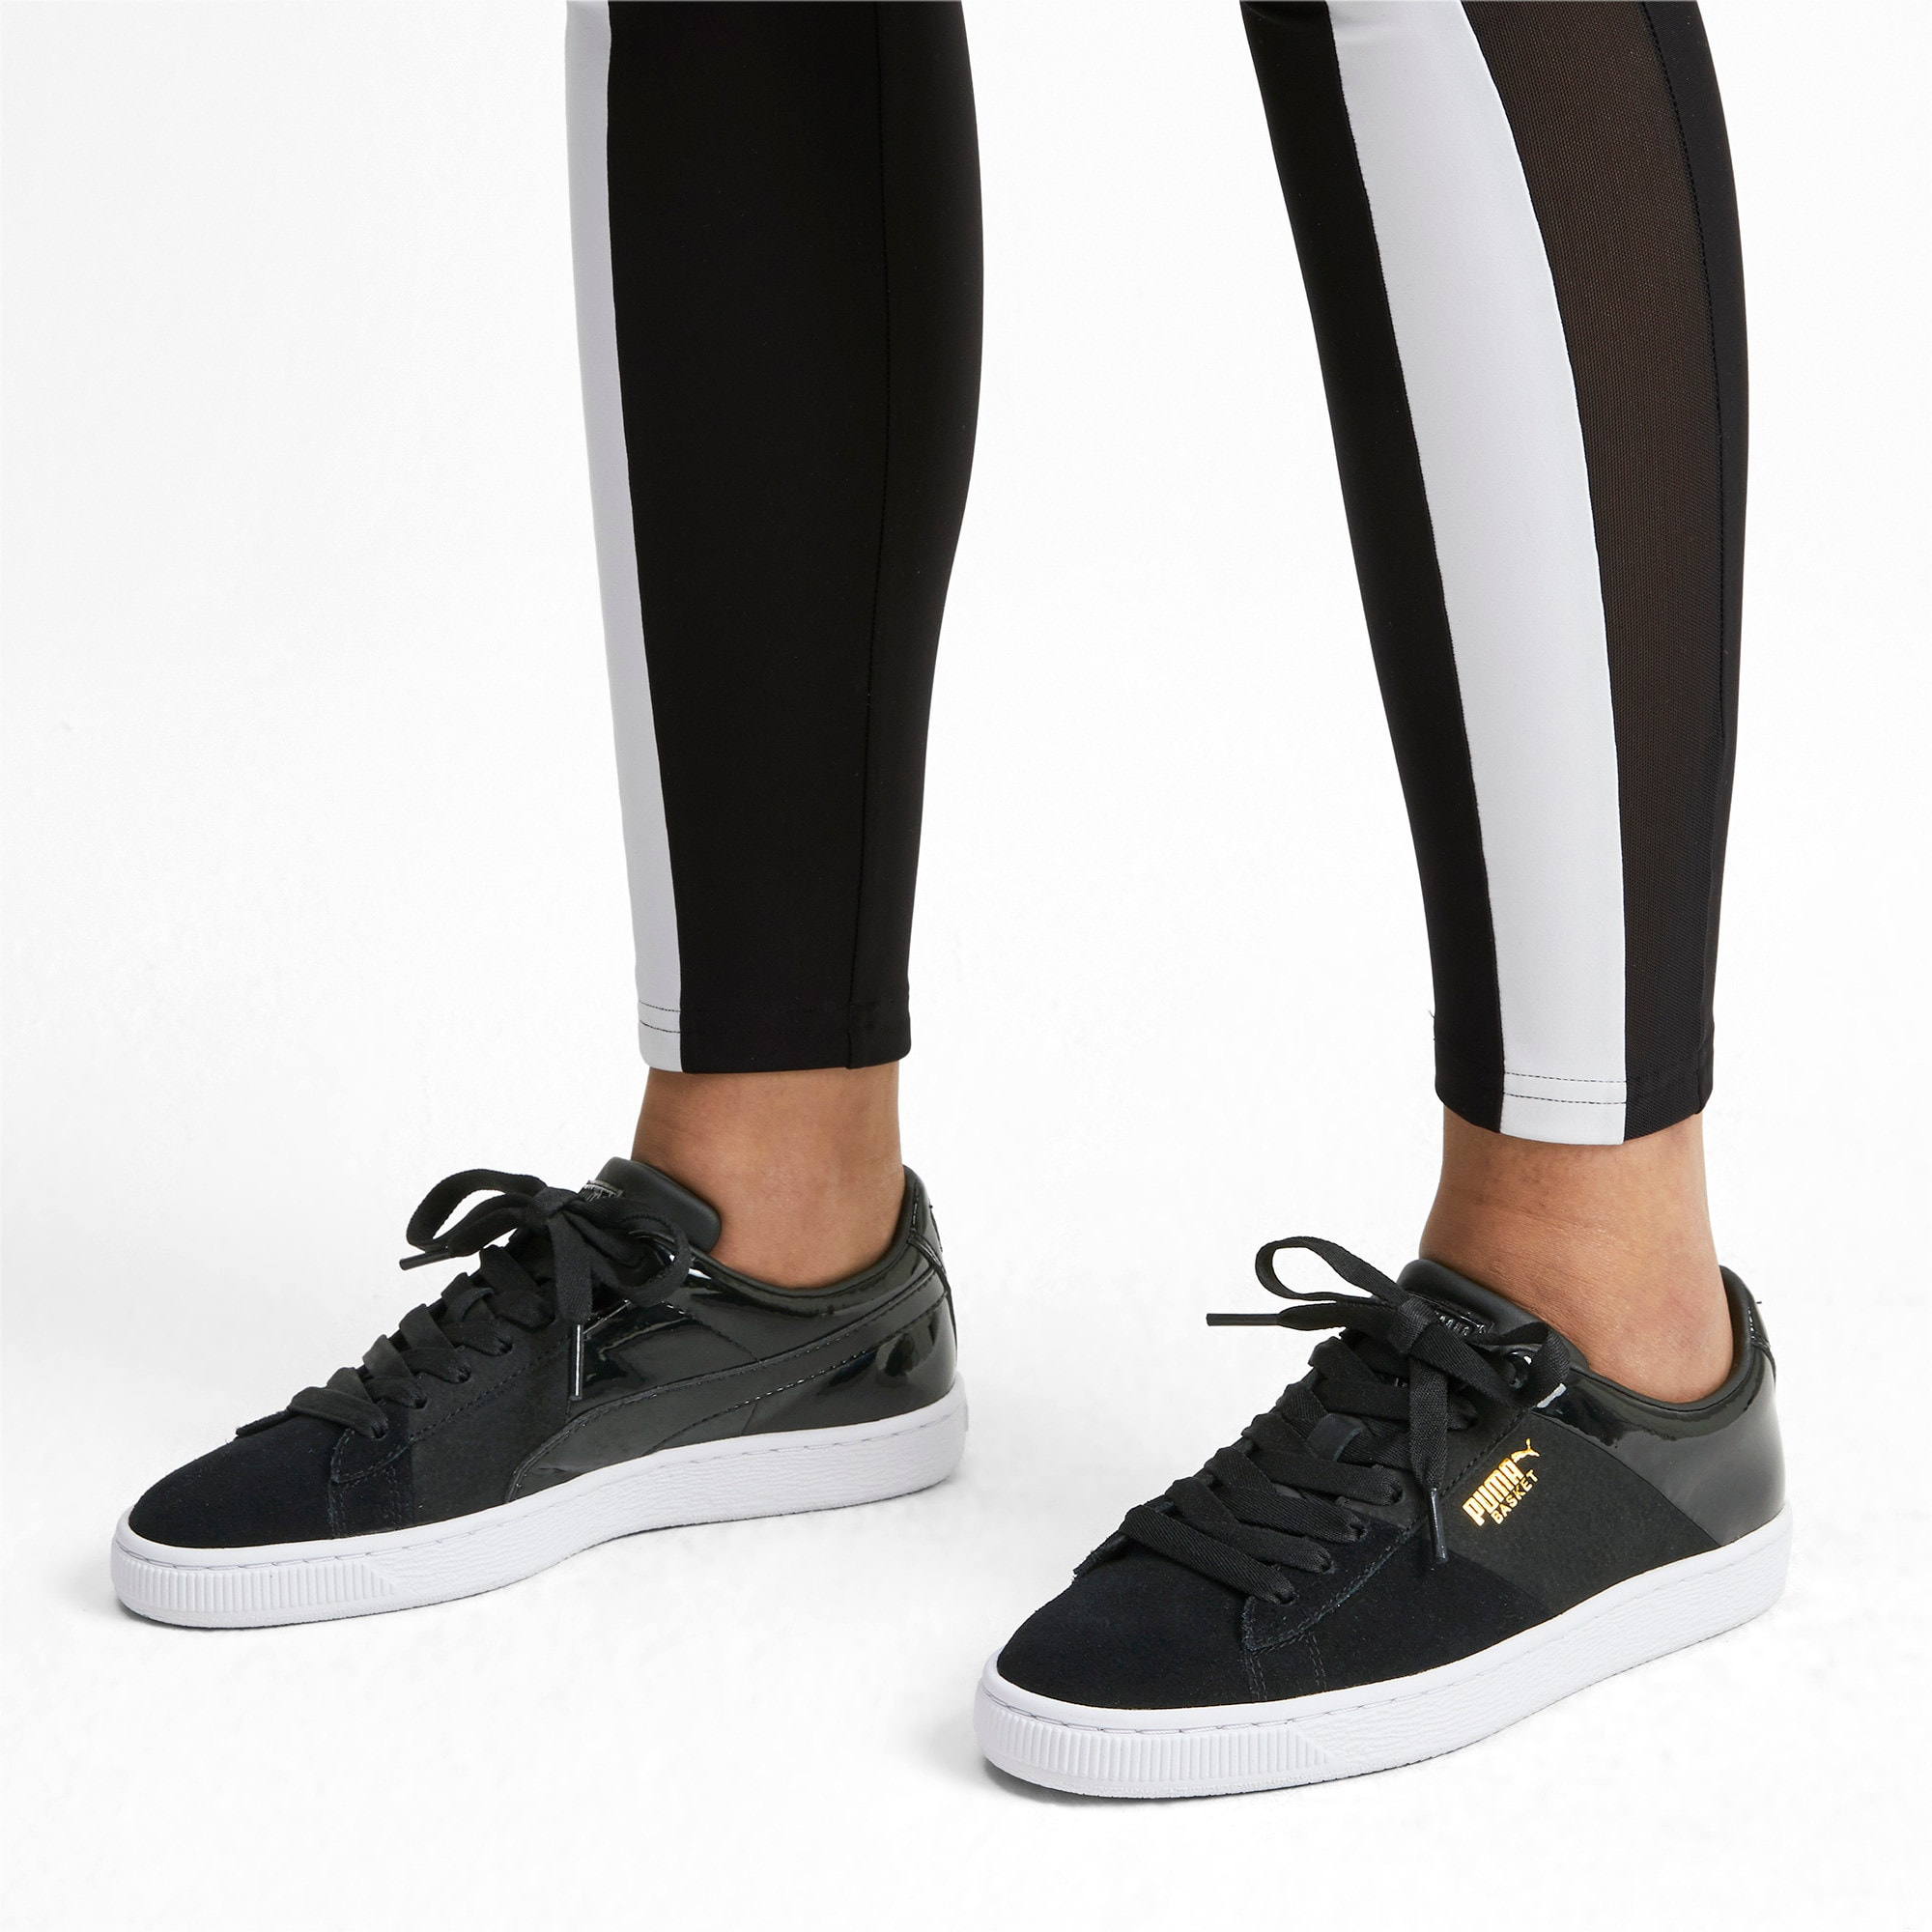 Thumbnail 2 of Basket Remix Women's Trainers, Puma Black-Puma Team Gold, medium